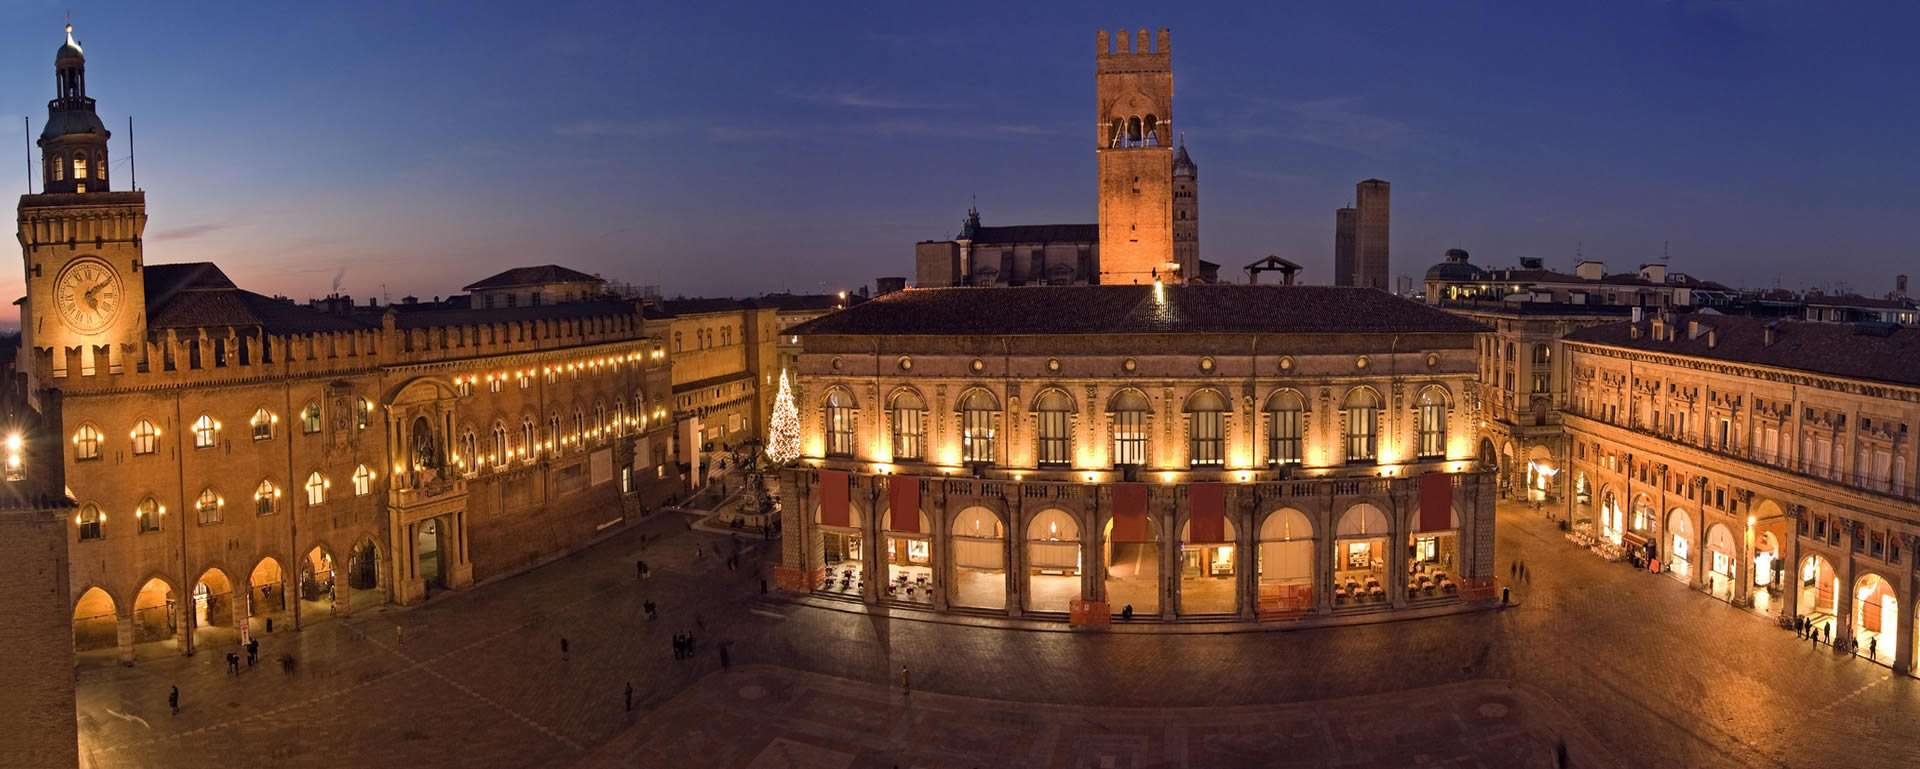 Nh bologna de la gare affitta sale meeting e riunioni a for Jaboli arredamenti san lazzaro di savena